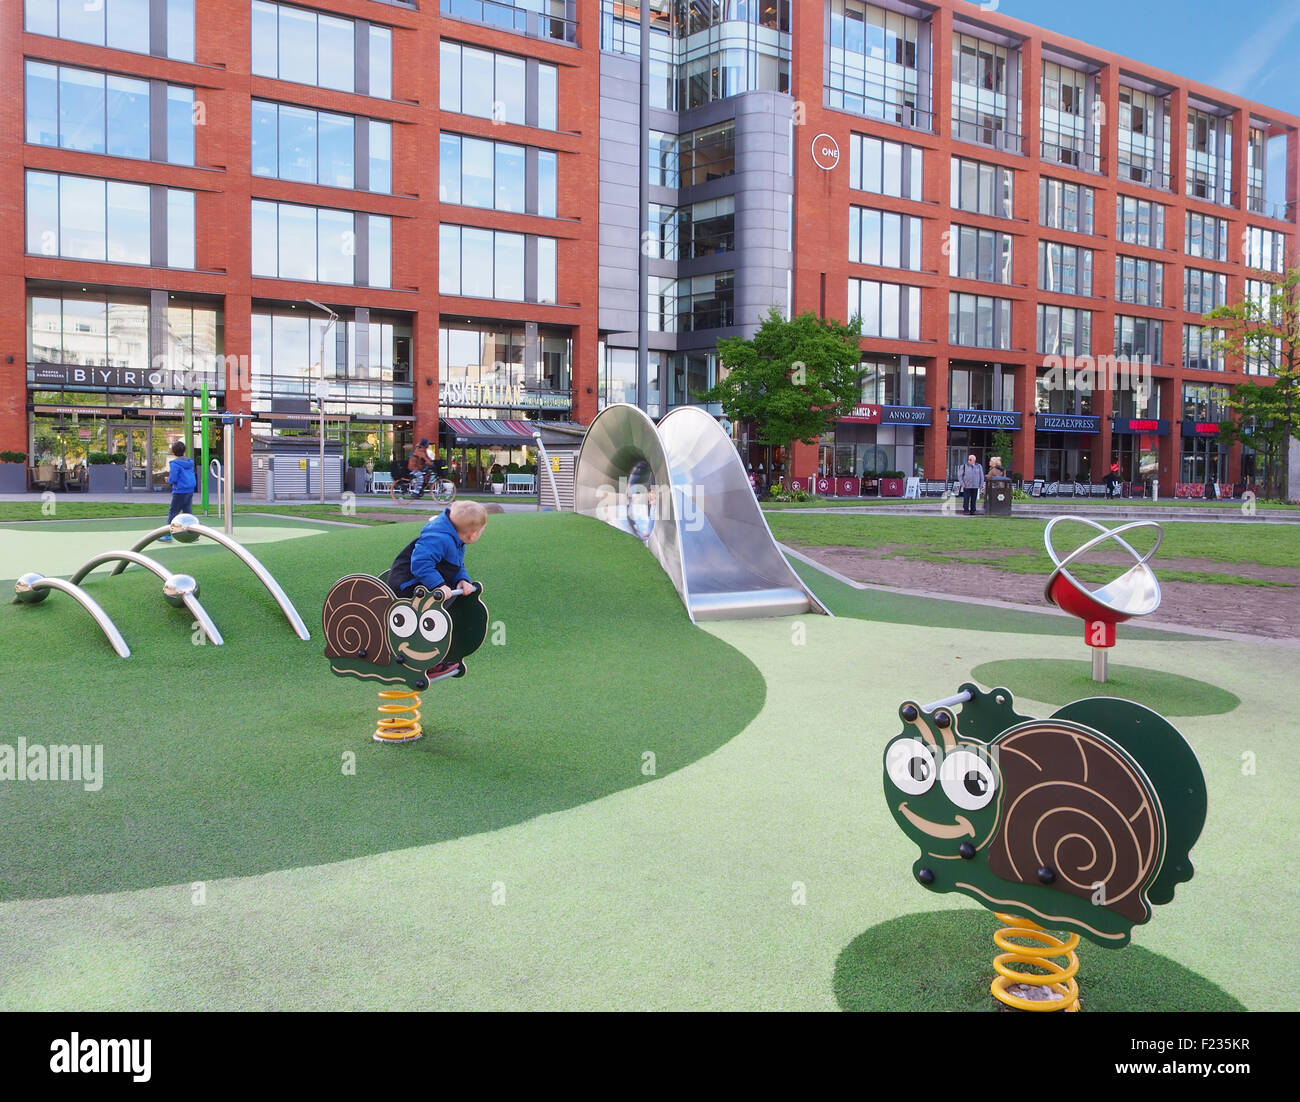 The childrens playgound with the shops behind in Piccadilly Gardens, Manchester, UK. - Stock Image